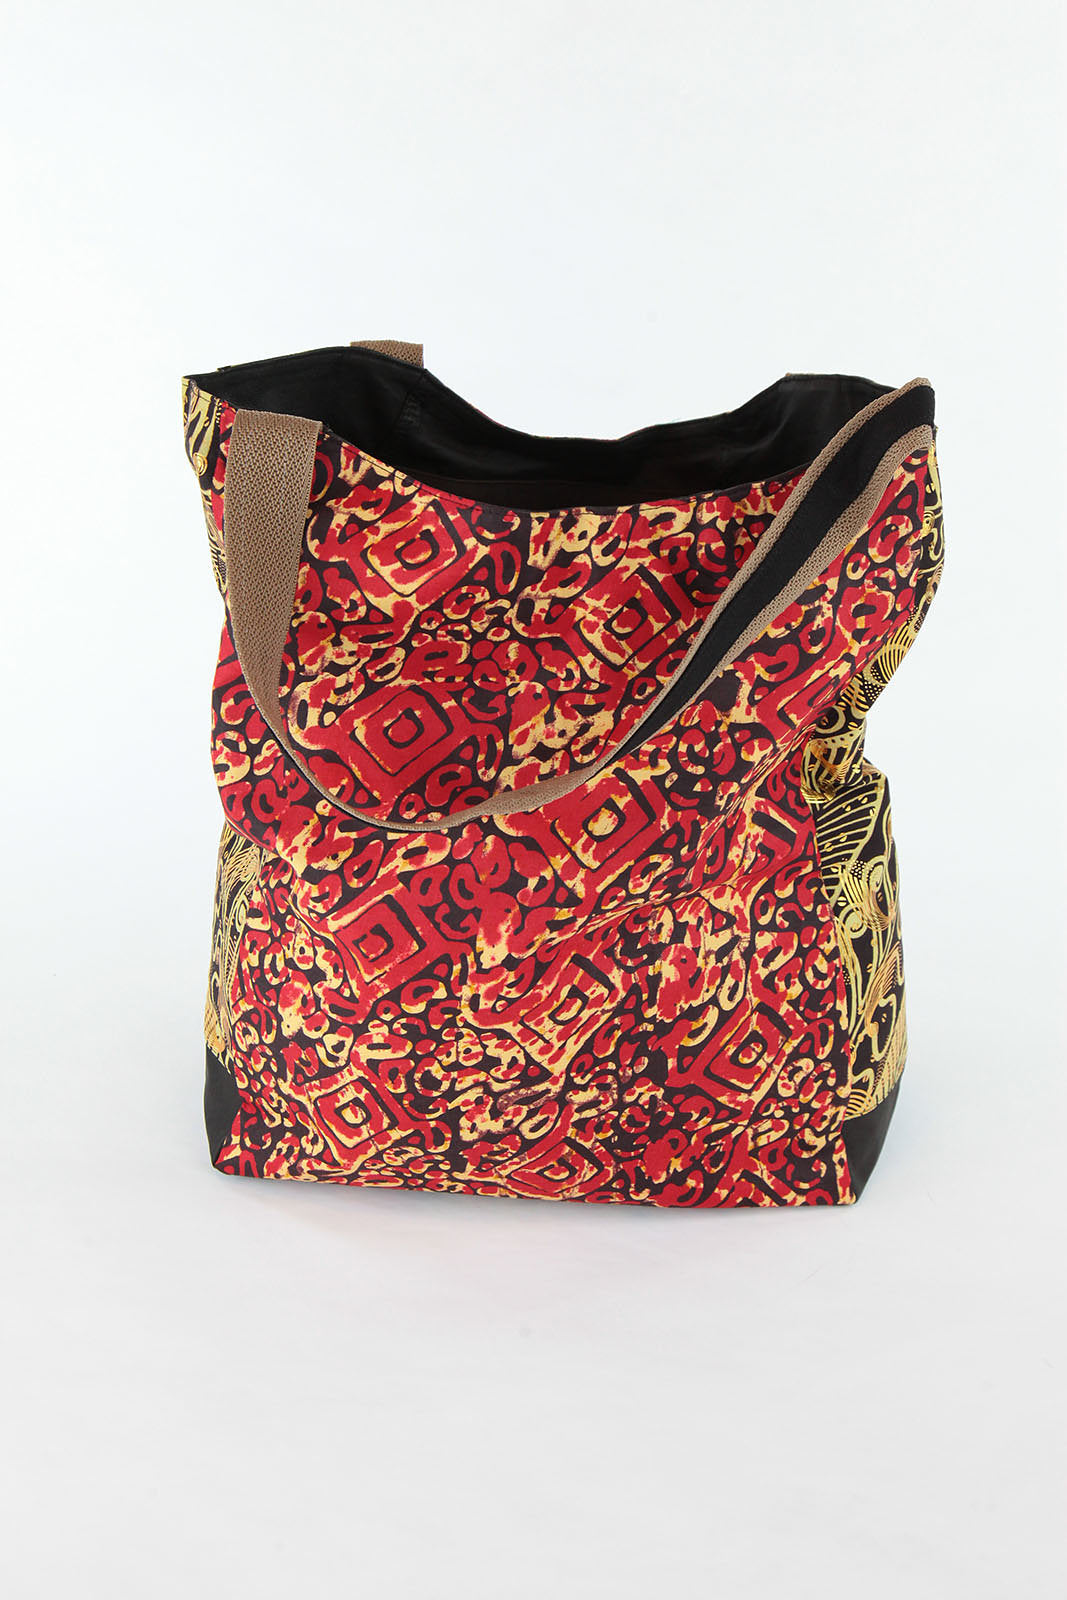 African Print Shopper Bag-Maroon Gold - Africas Closet